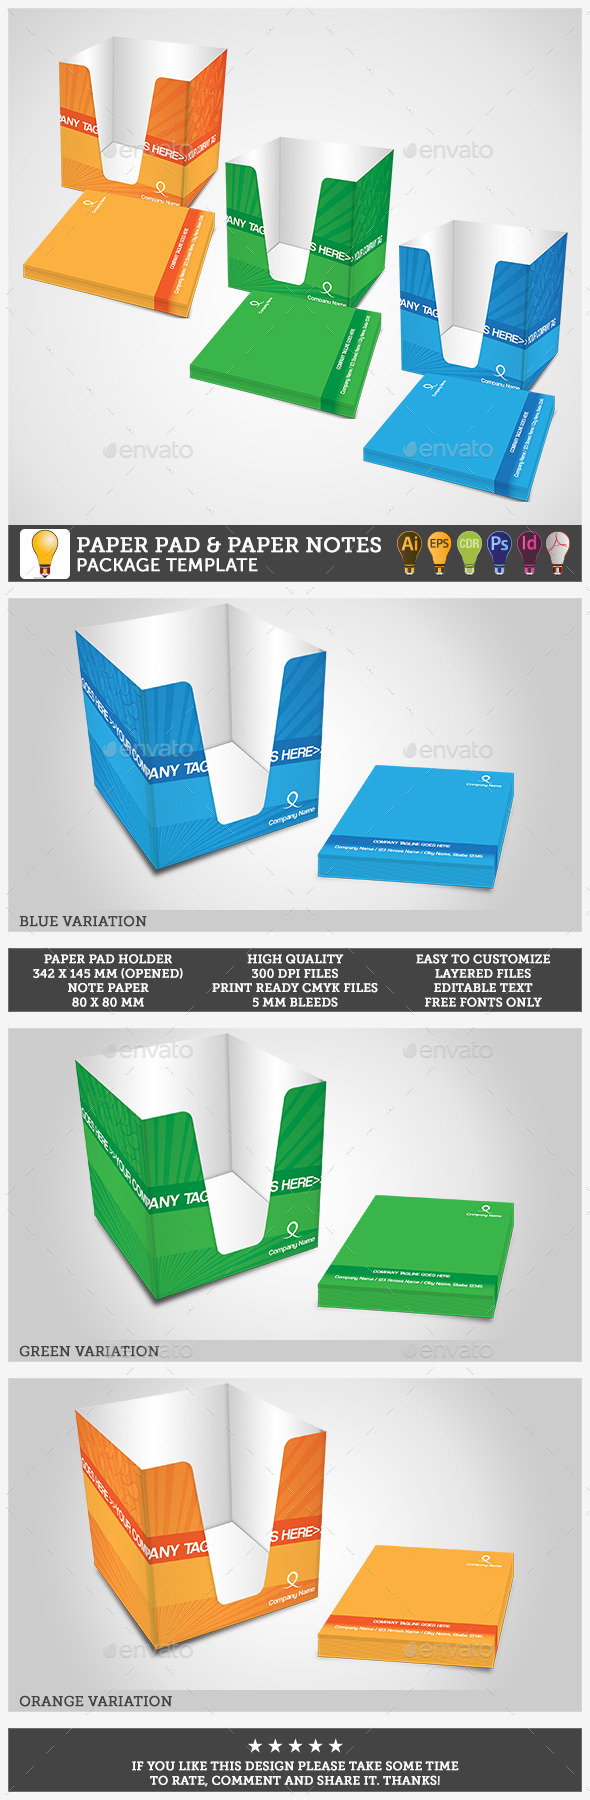 Paper Pad Holder & Paper Cutouts Package - Packaging Print Templates